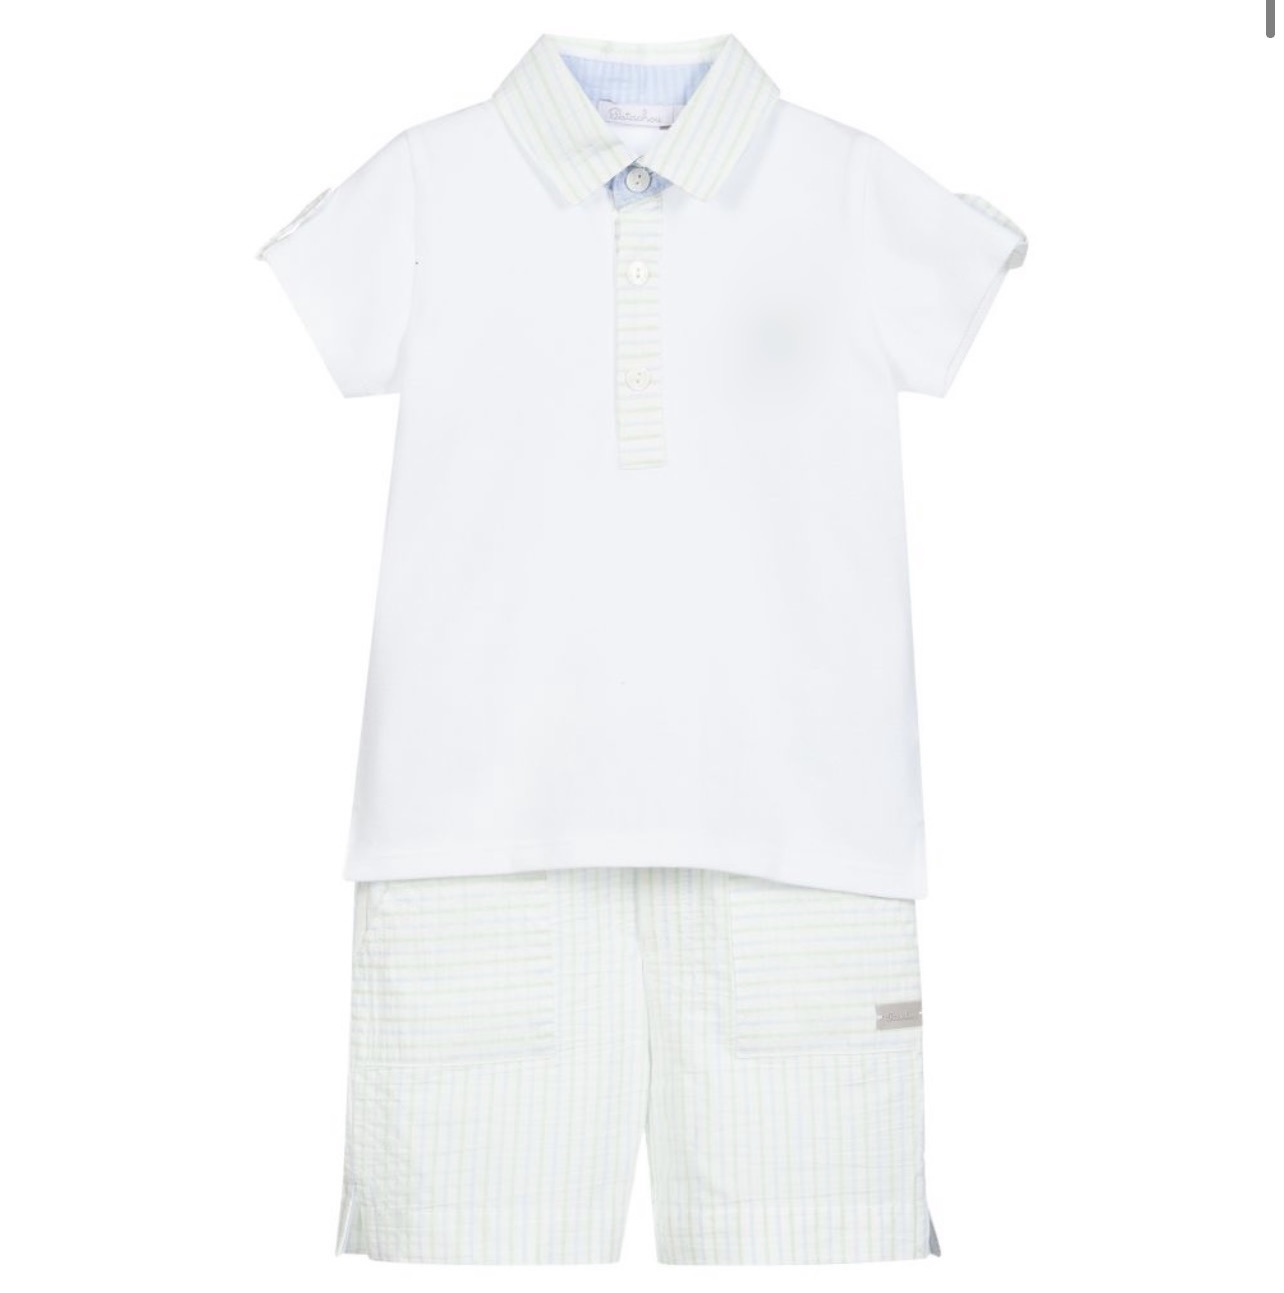 Patachou Patachou Green/Blue Stripe Short Set 3322 S21